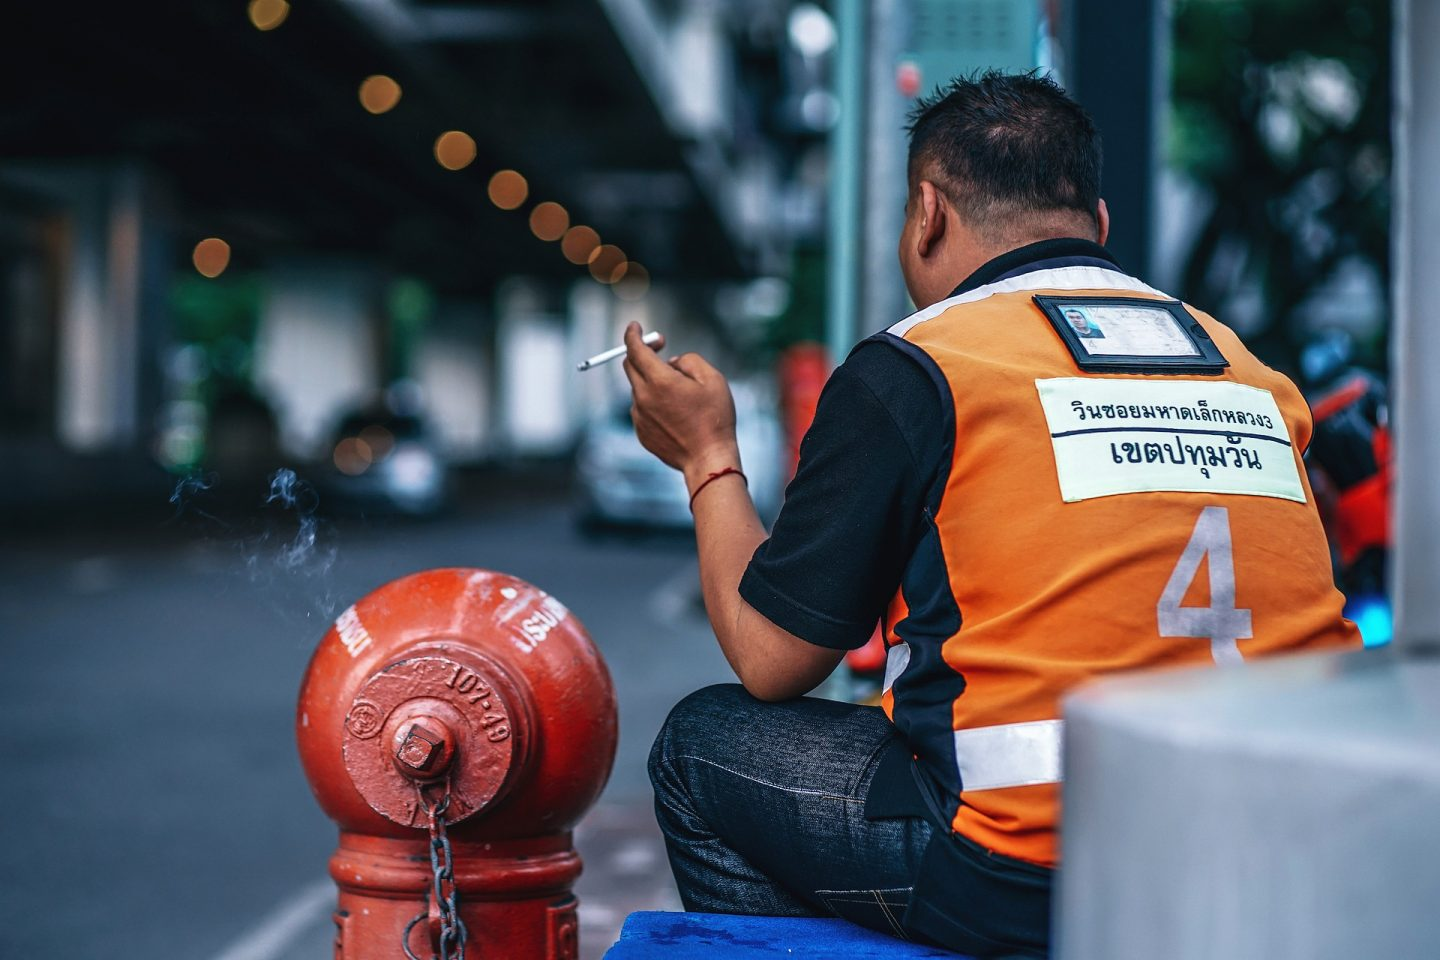 Motorcycle taxi driver smoking a cigarette